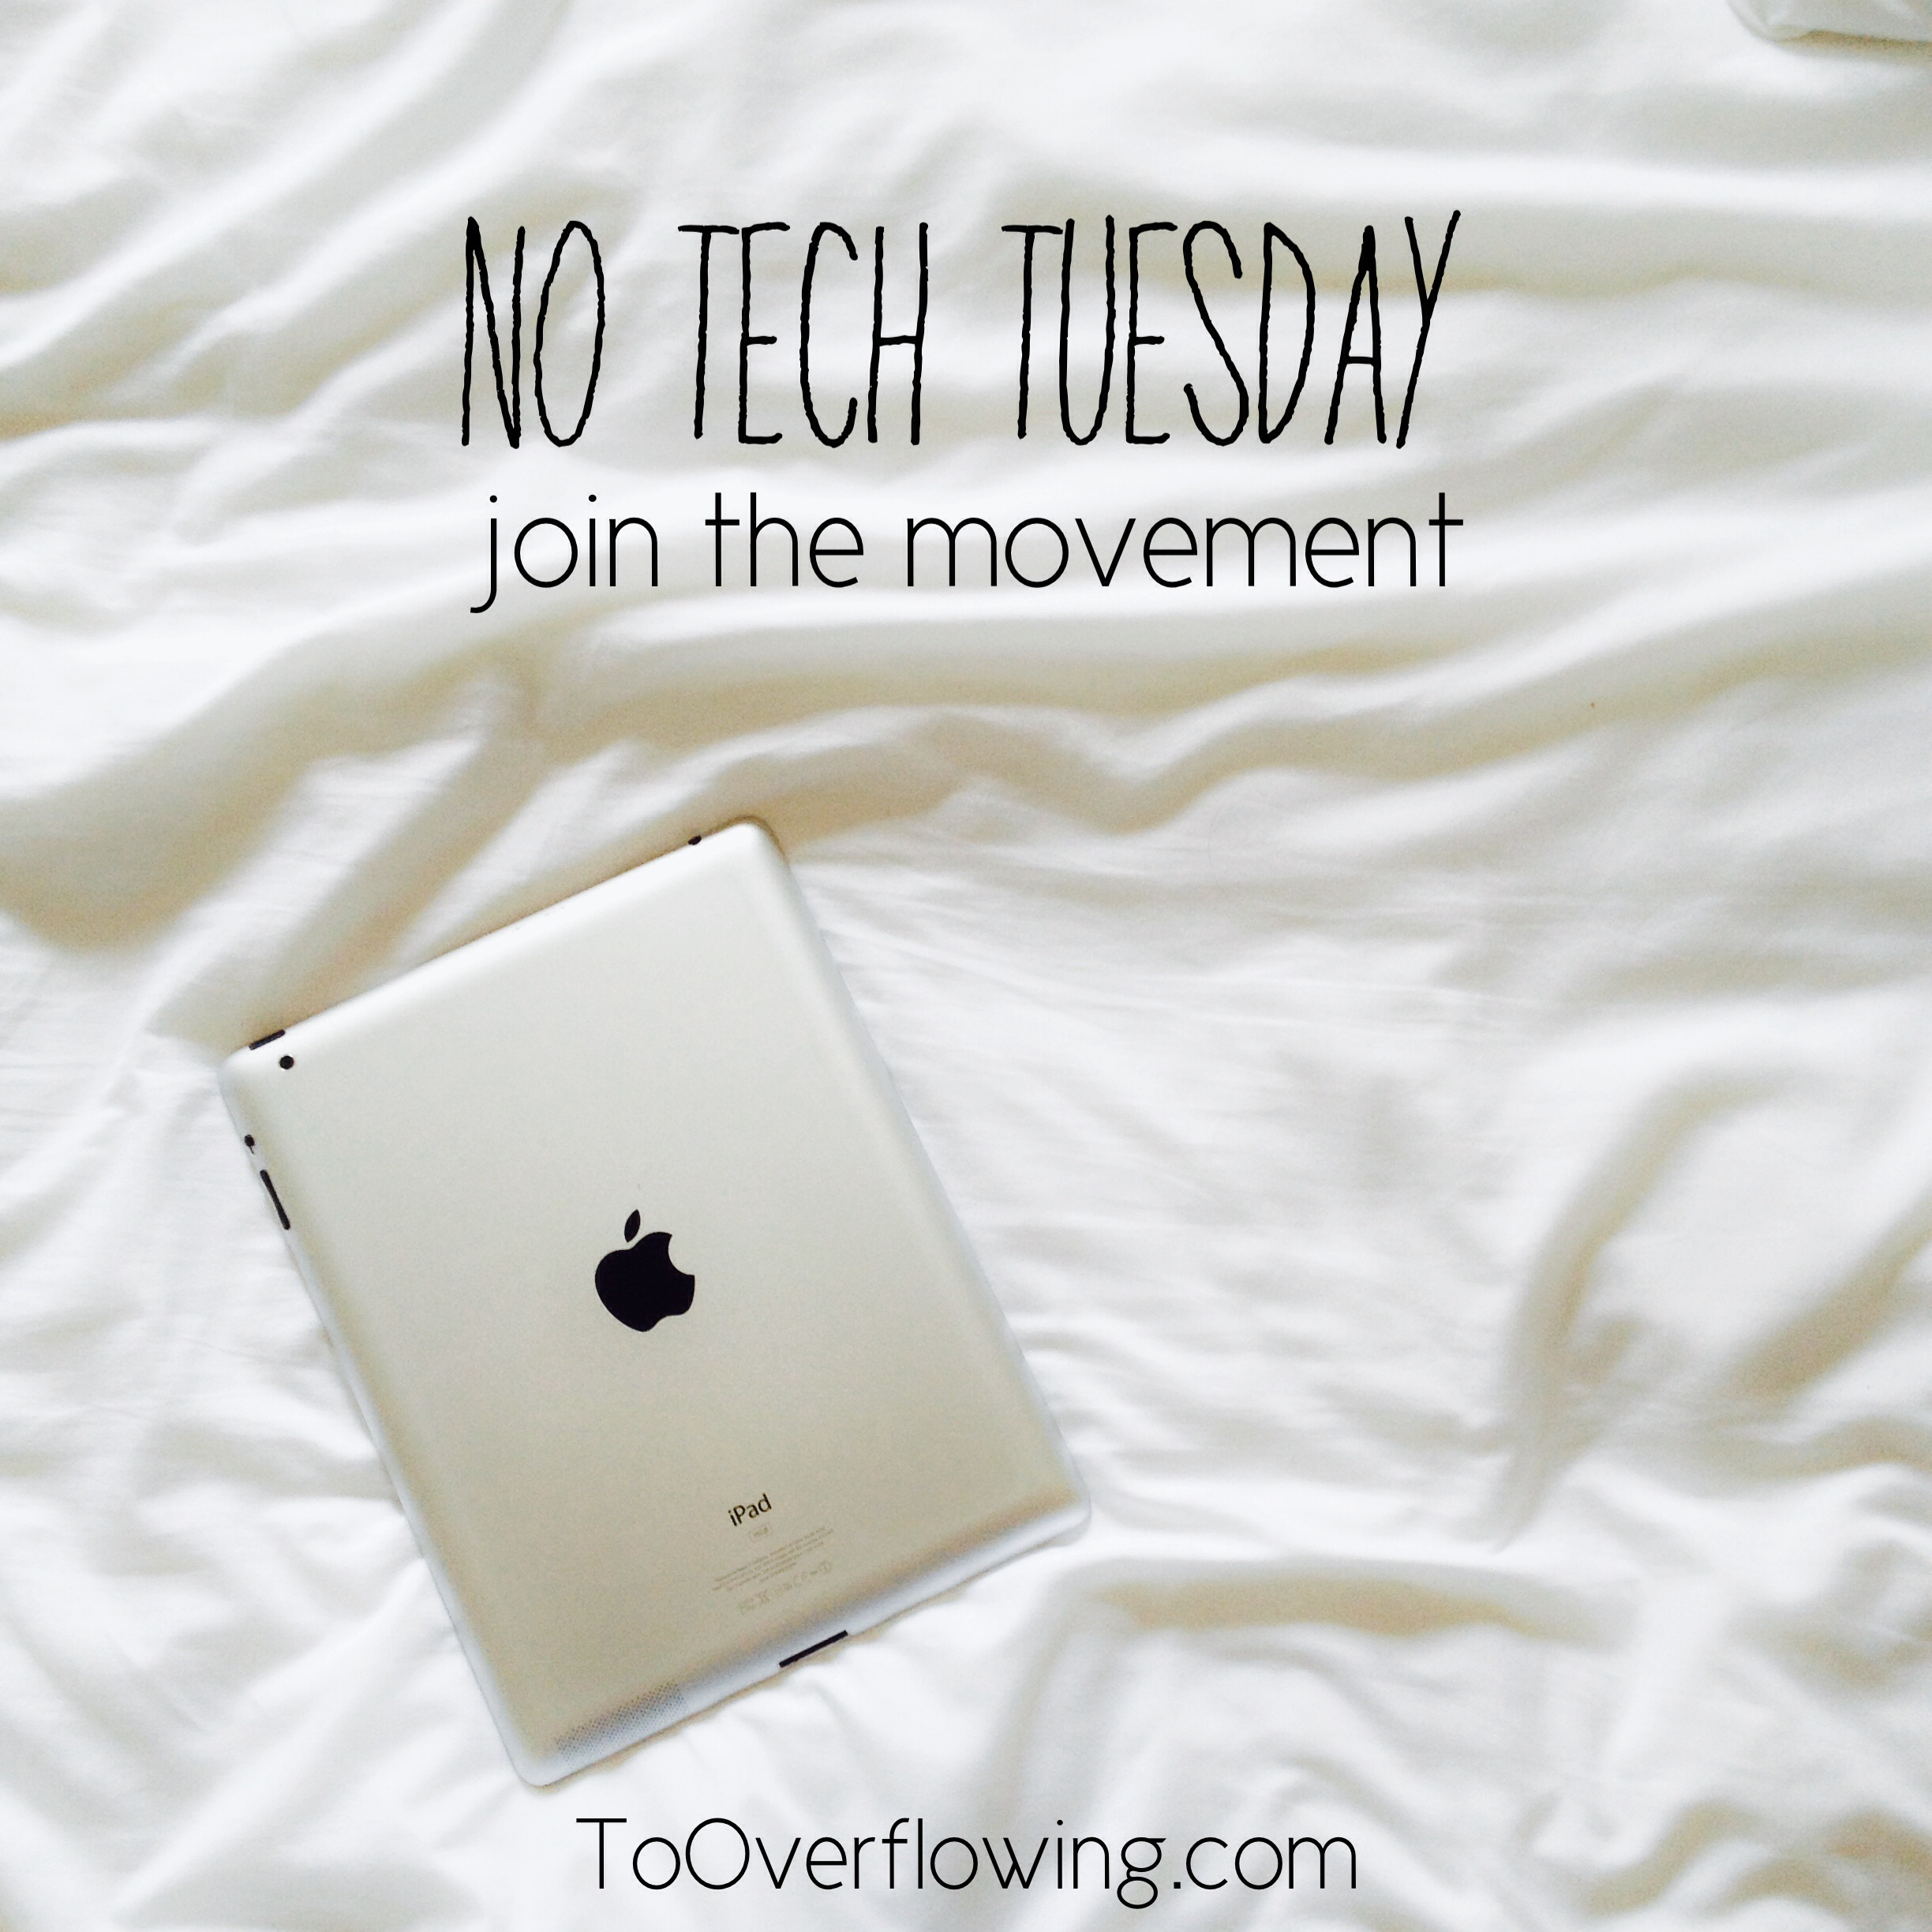 the technology movement Learn how technology combined with movement can create ways to maximize student learning and increase the effectiveness of teacher instruction.